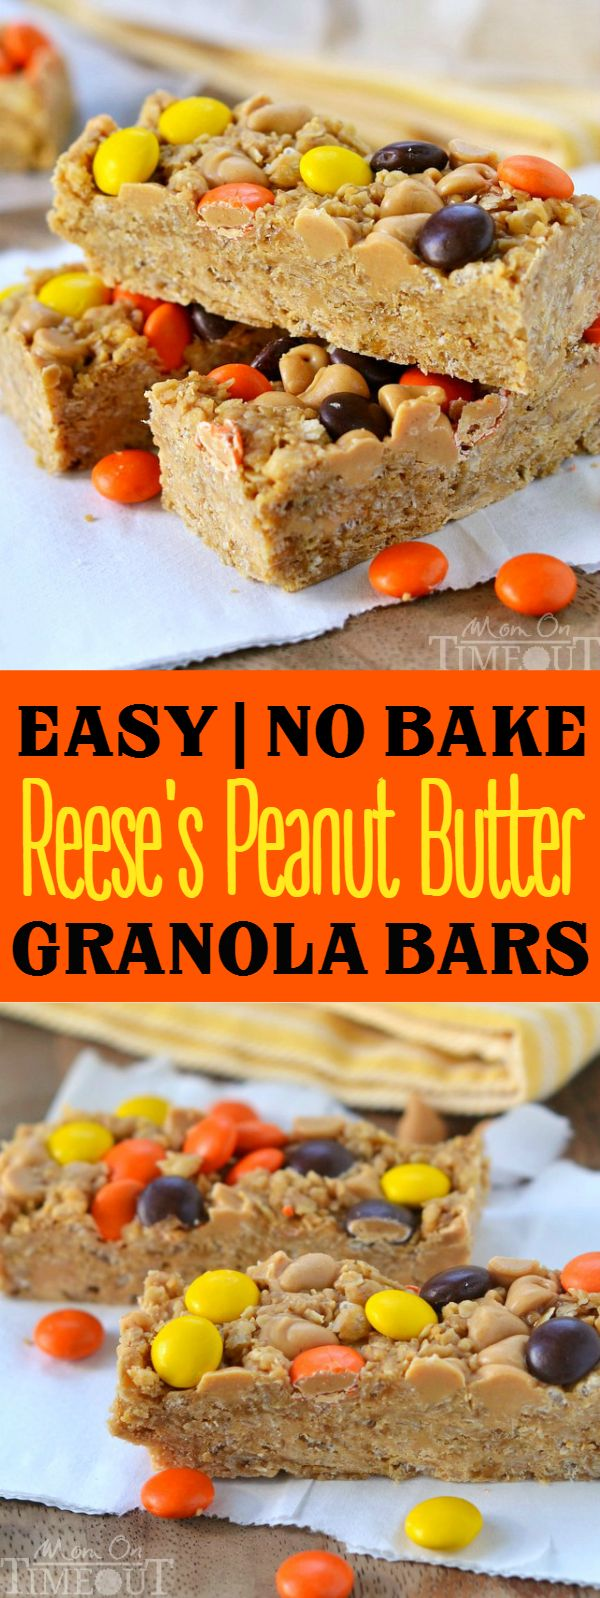 These easy no-bake Reese's Peanut Butter Granola Bars are hard to resist for kids and adults alike! Packed with delicious peanut butter flavor and topped with Reese's Pieces, these bars are truly eye candy!